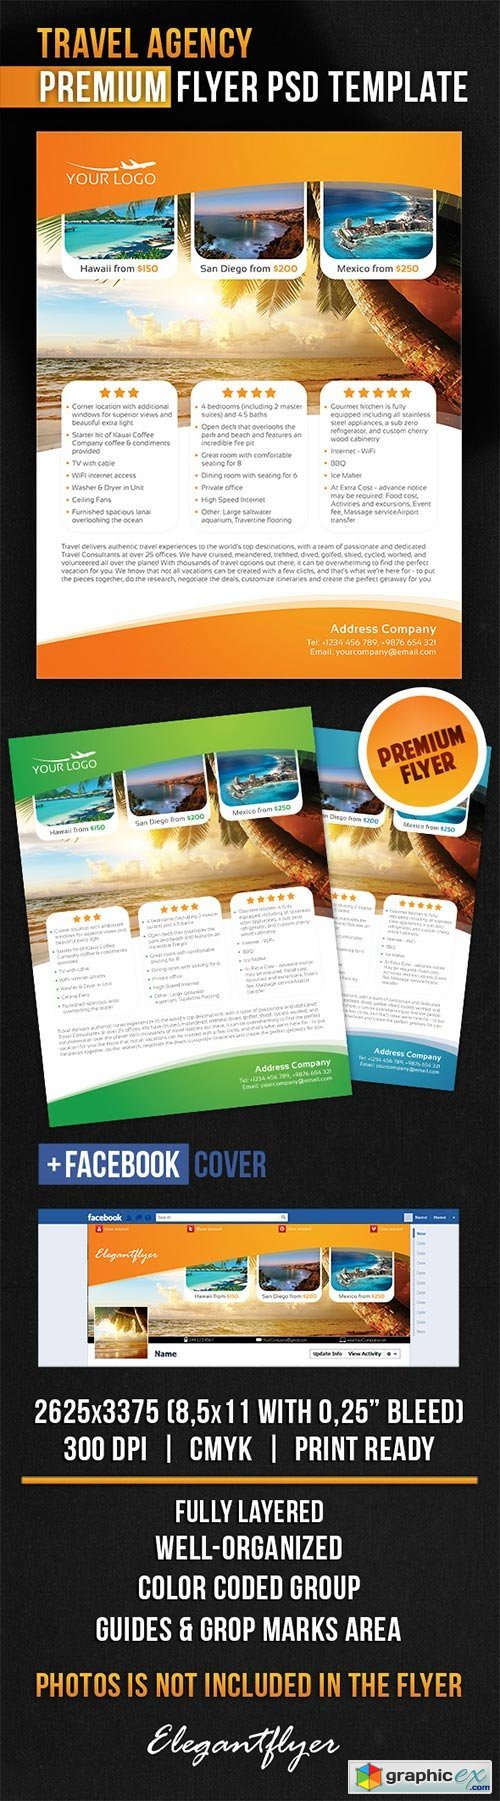 Travel Agency Flyer PSD Template + Facebook Cover